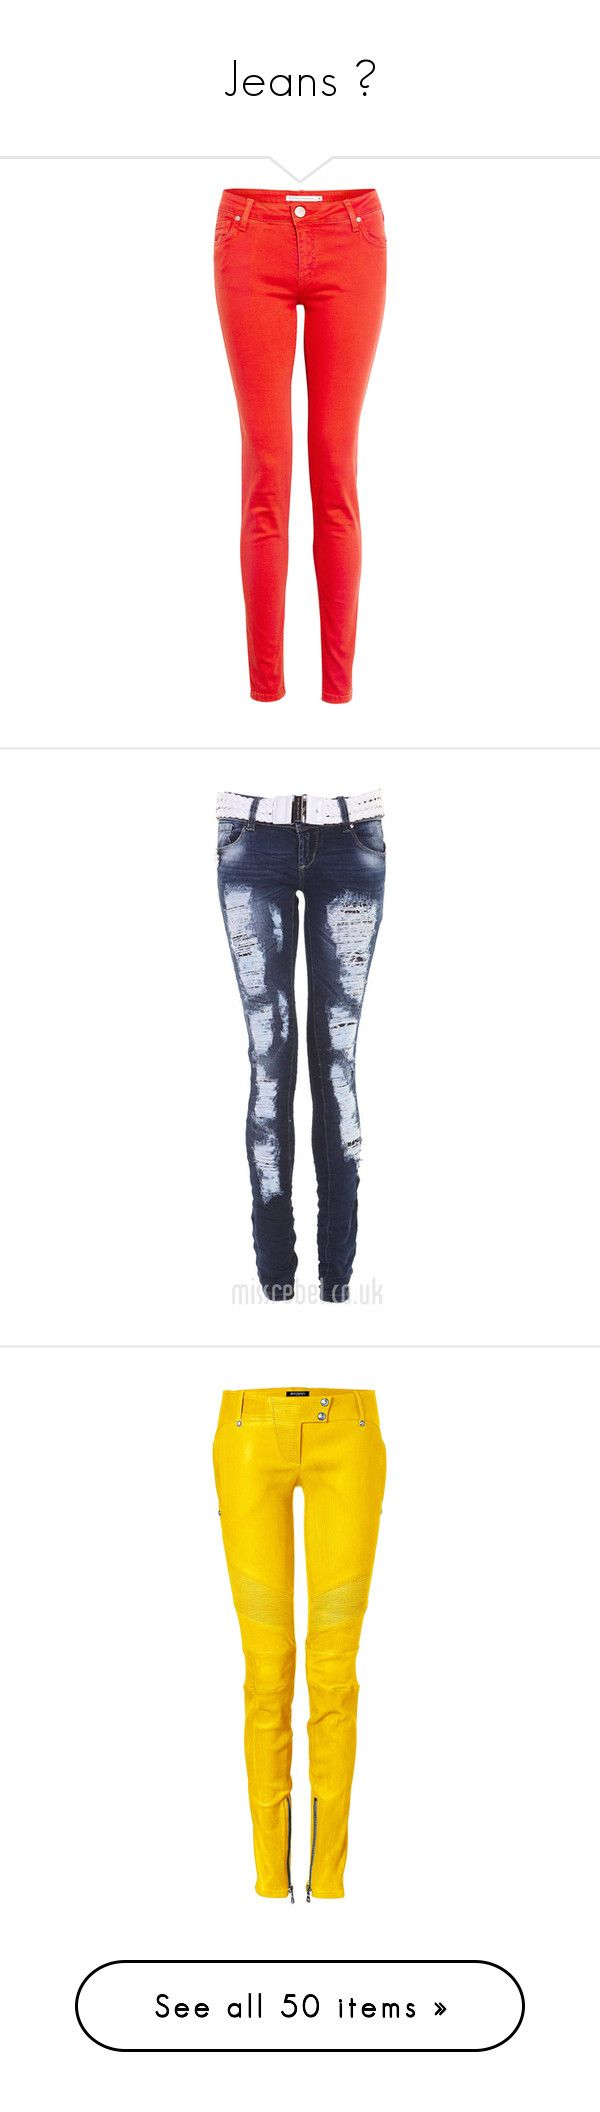 """""""Jeans ♥"""" by marijanakrasic ❤ liked on Polyvore featuring jeans, pants, bottoms, calças, pantalones, leather jeans, red rivet jeans, red leather skinny jeans, mid rise jeans and mid rise skinny jeans"""